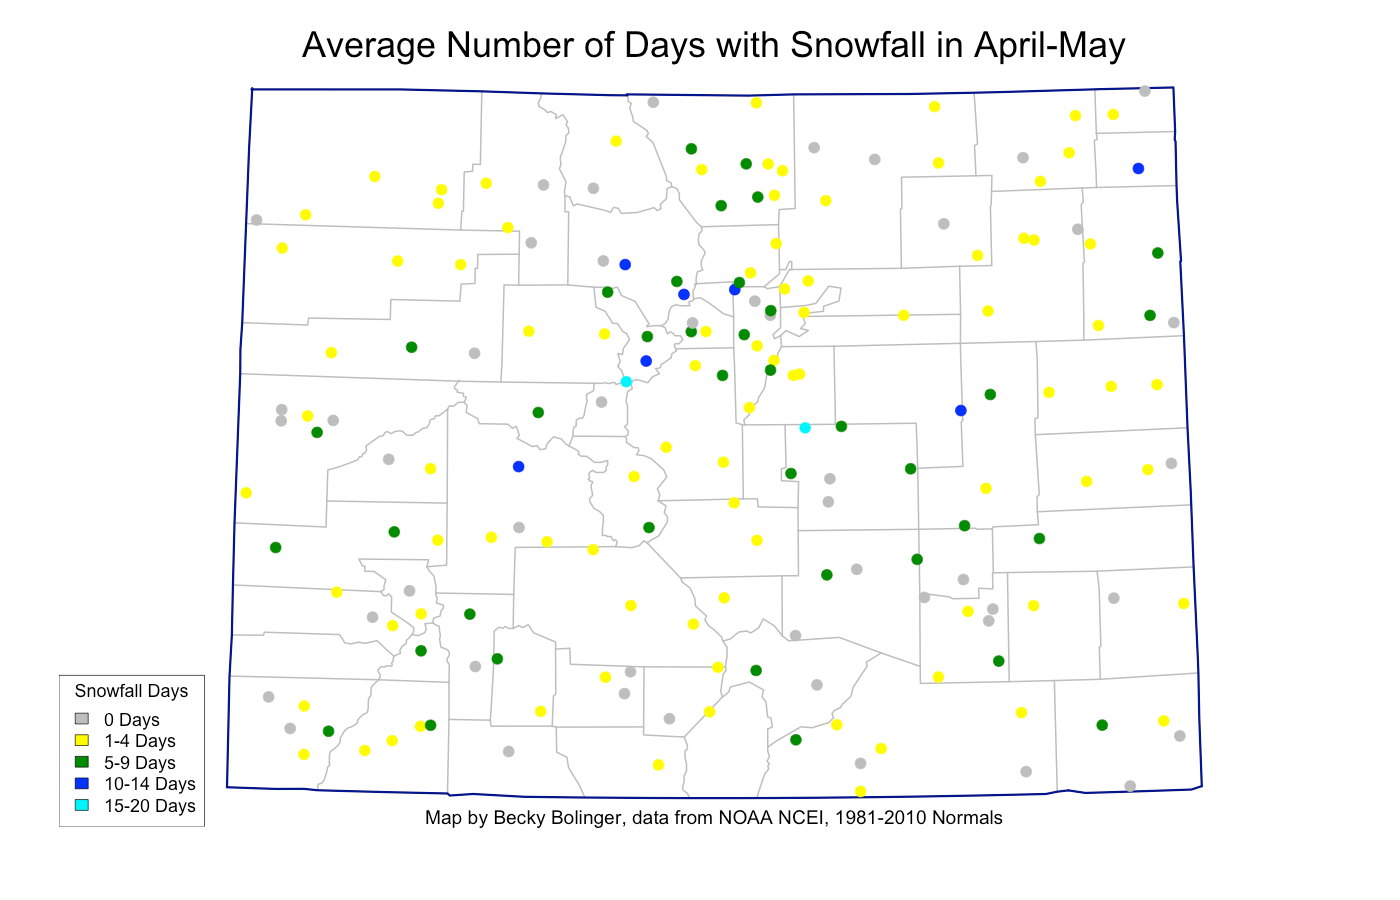 Average number of days with snowfall in Colorado during April-May